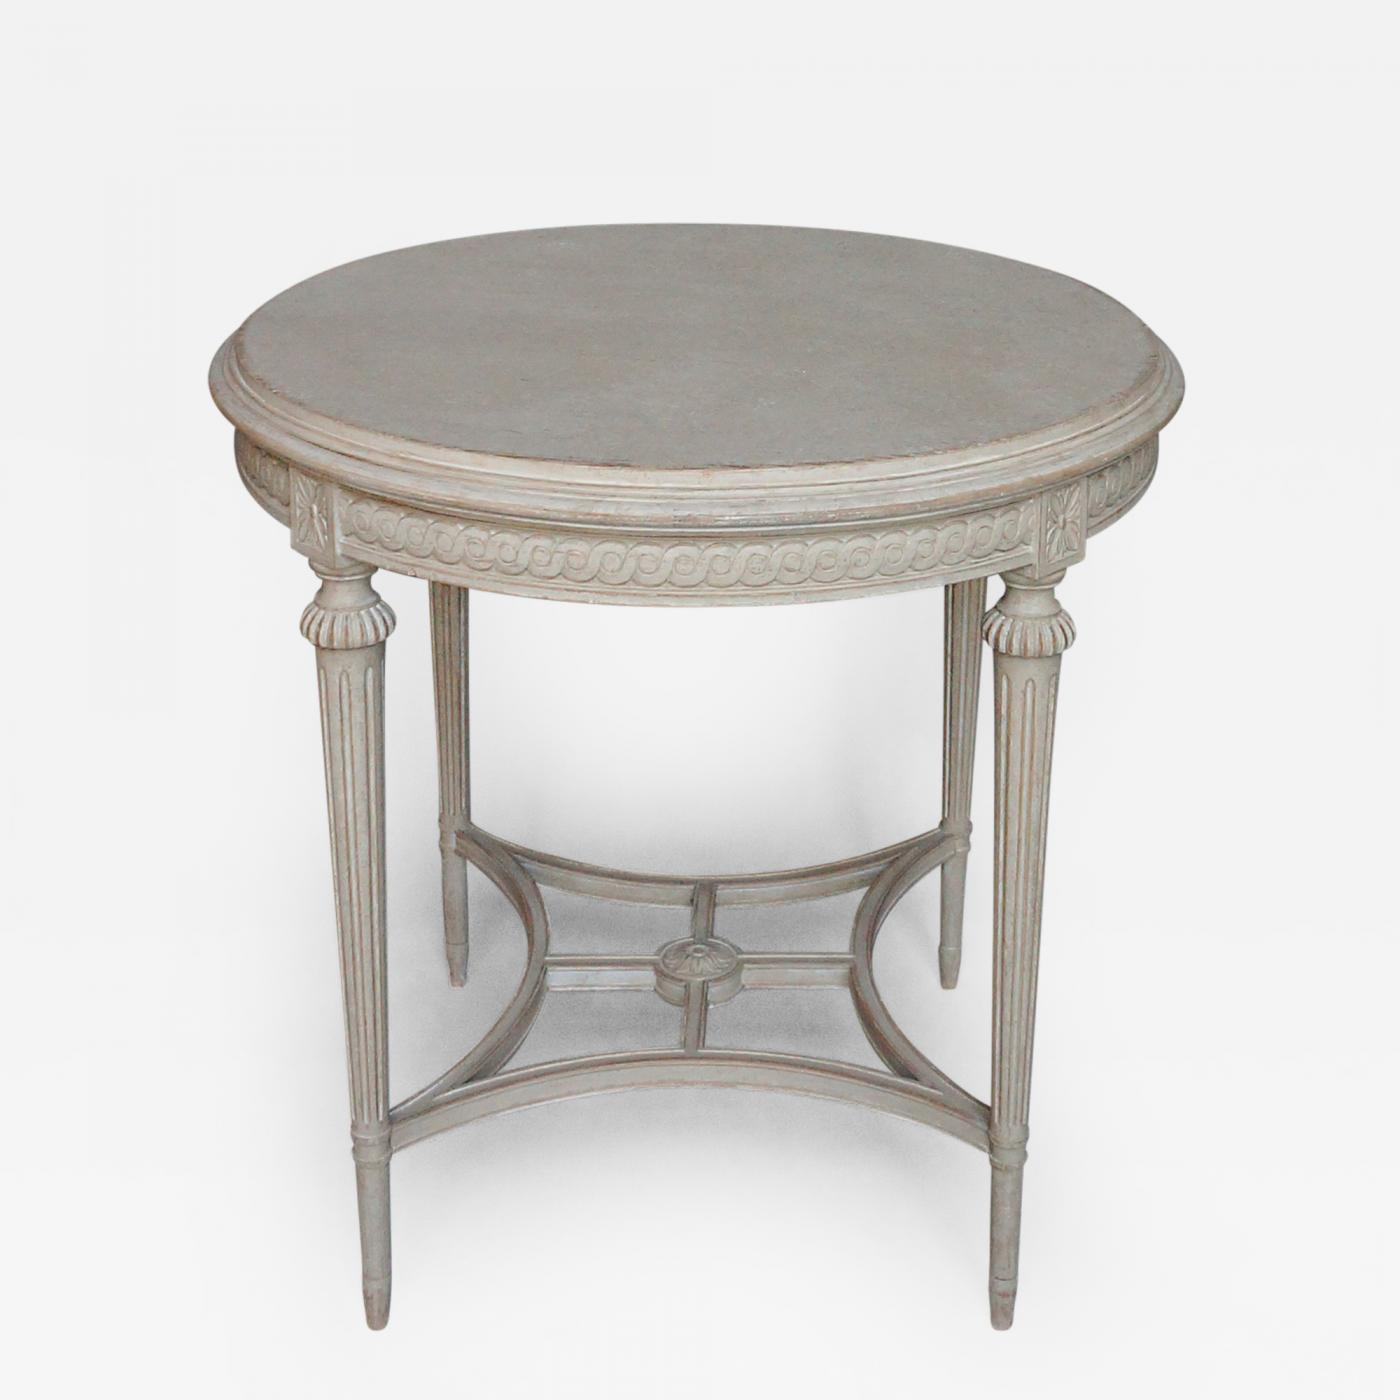 listings furniture tables painted tables round table in the gustavian style - Gustavian Style Furniture